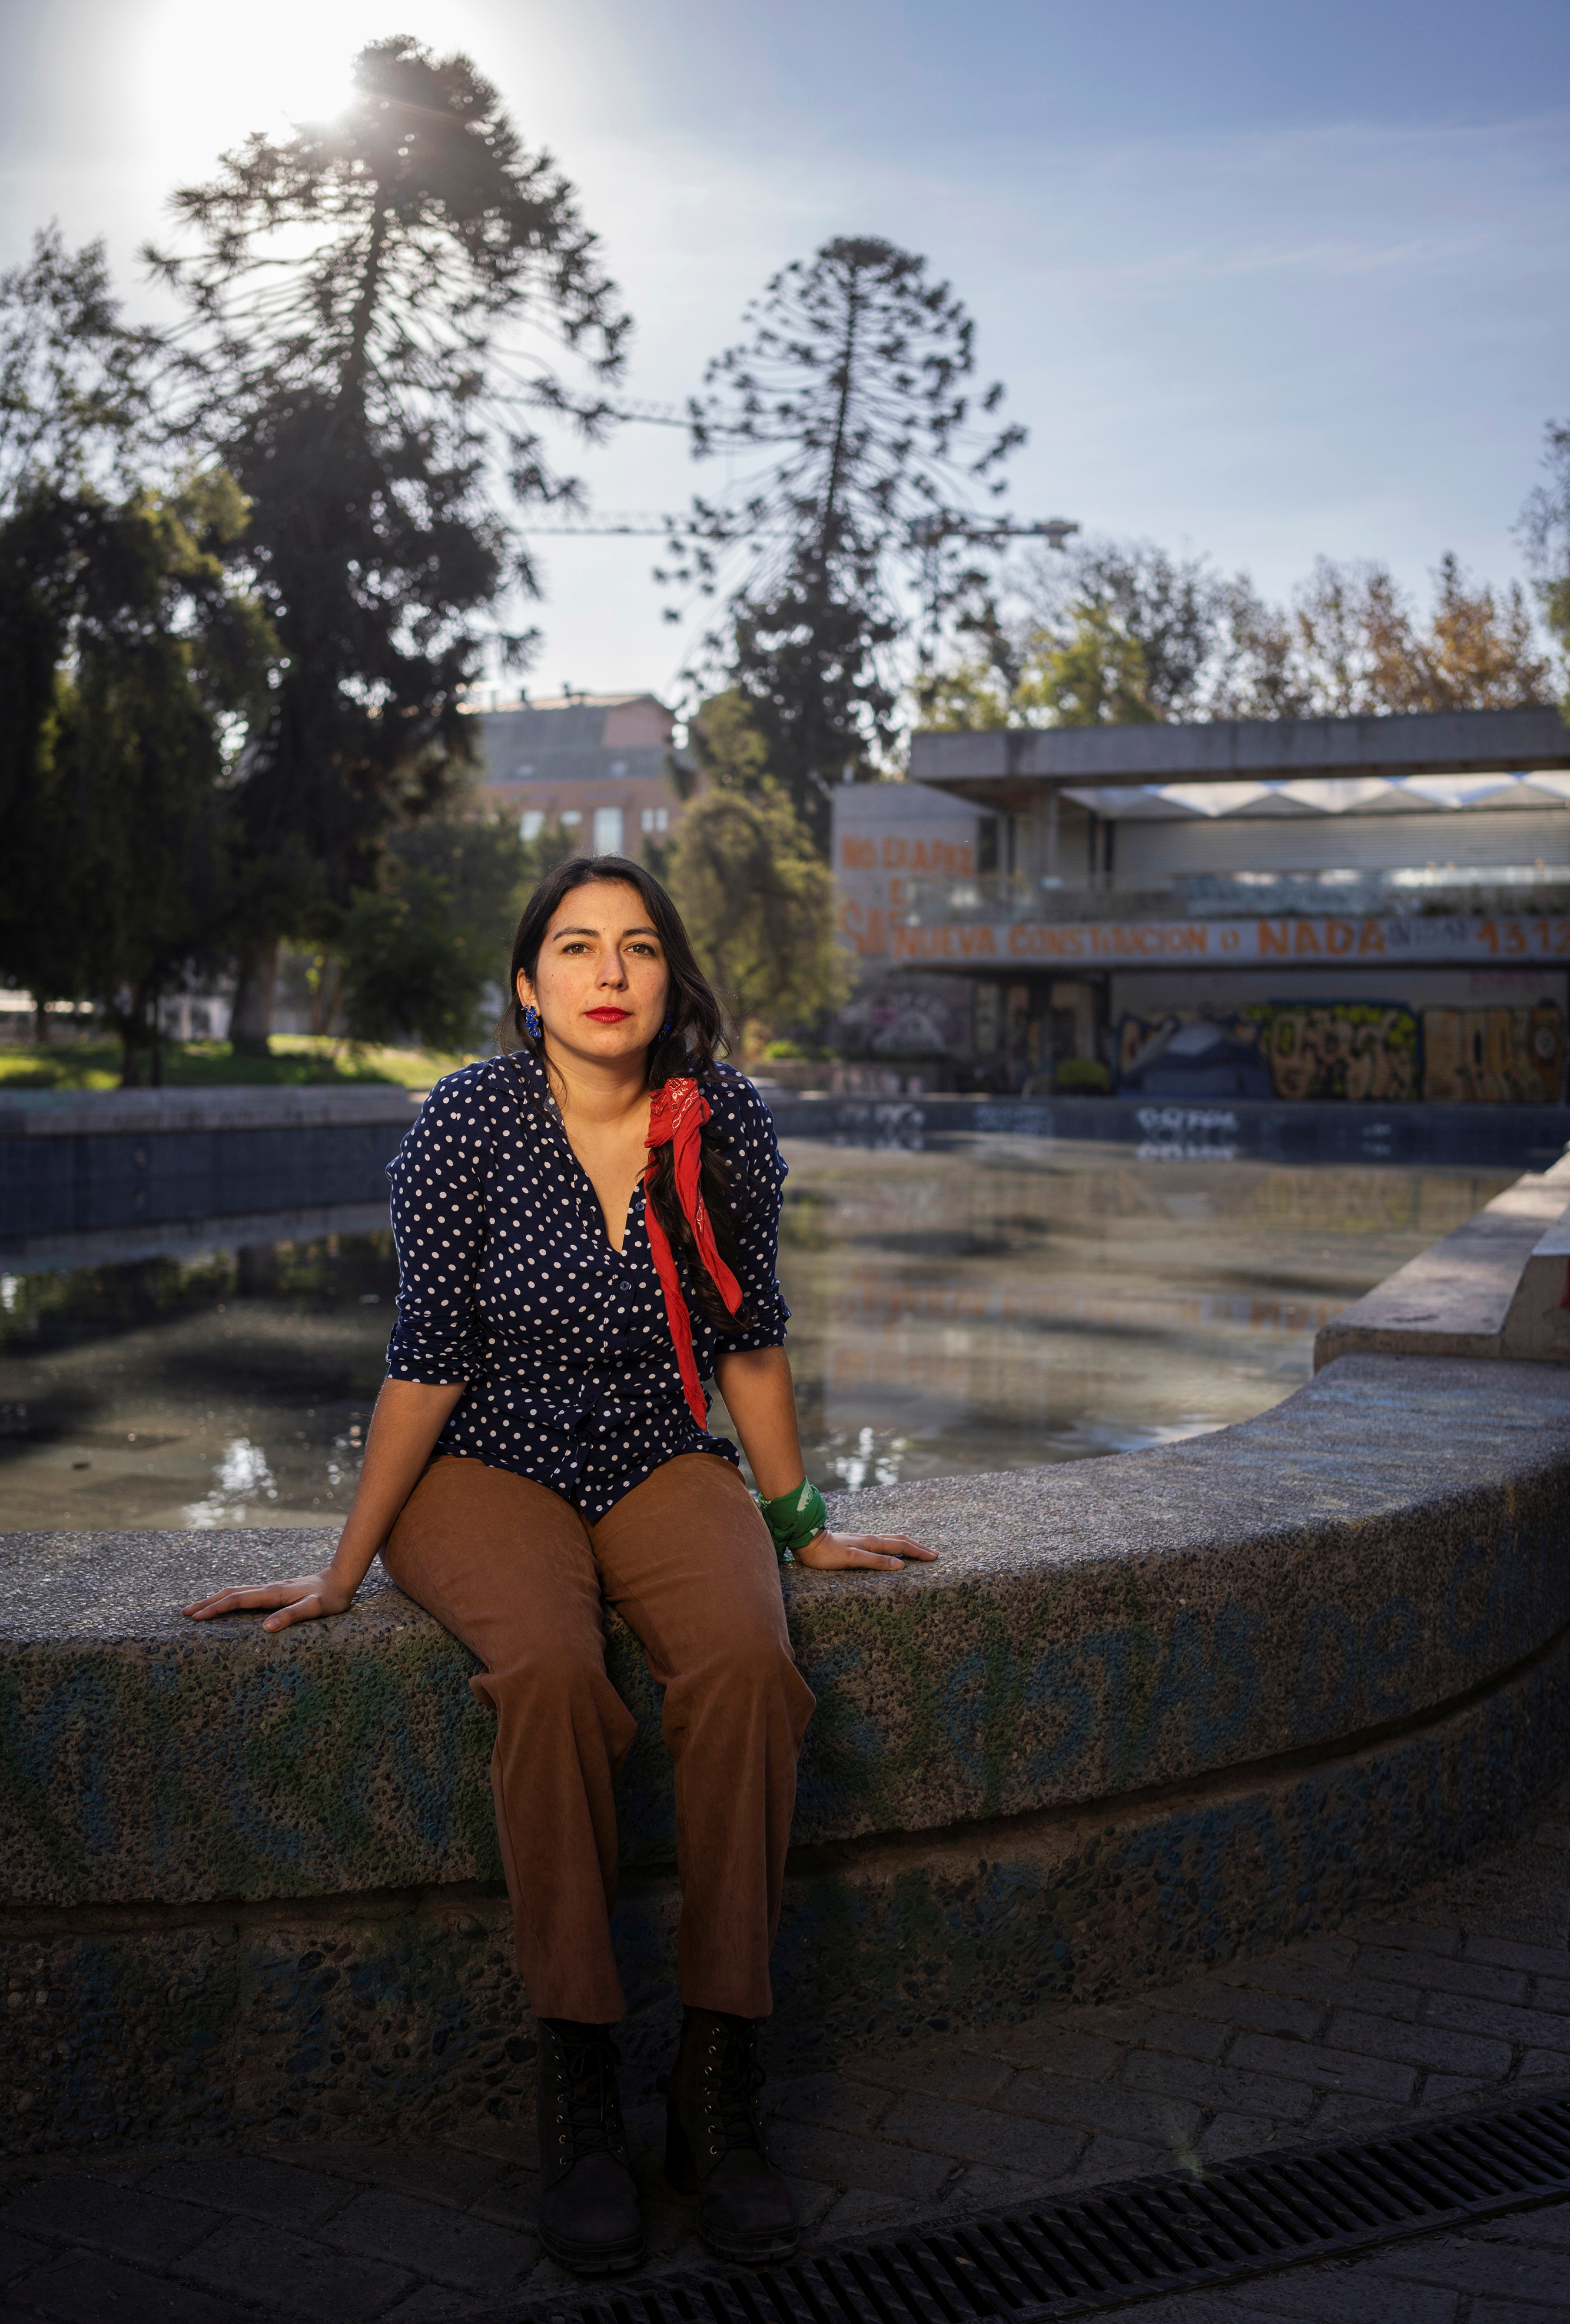 Alondra Carrillo Vidal, 29, a psychologist who acted as spokeswoman for the 8M women's movement and who was picked in the elections to represent the capital Santiago's working class southern suburbs, poses for a photograph, in Santiago, Chile May 6, 2021. Picture taken May 6, 2021.   REUTERS/Tamara Merino